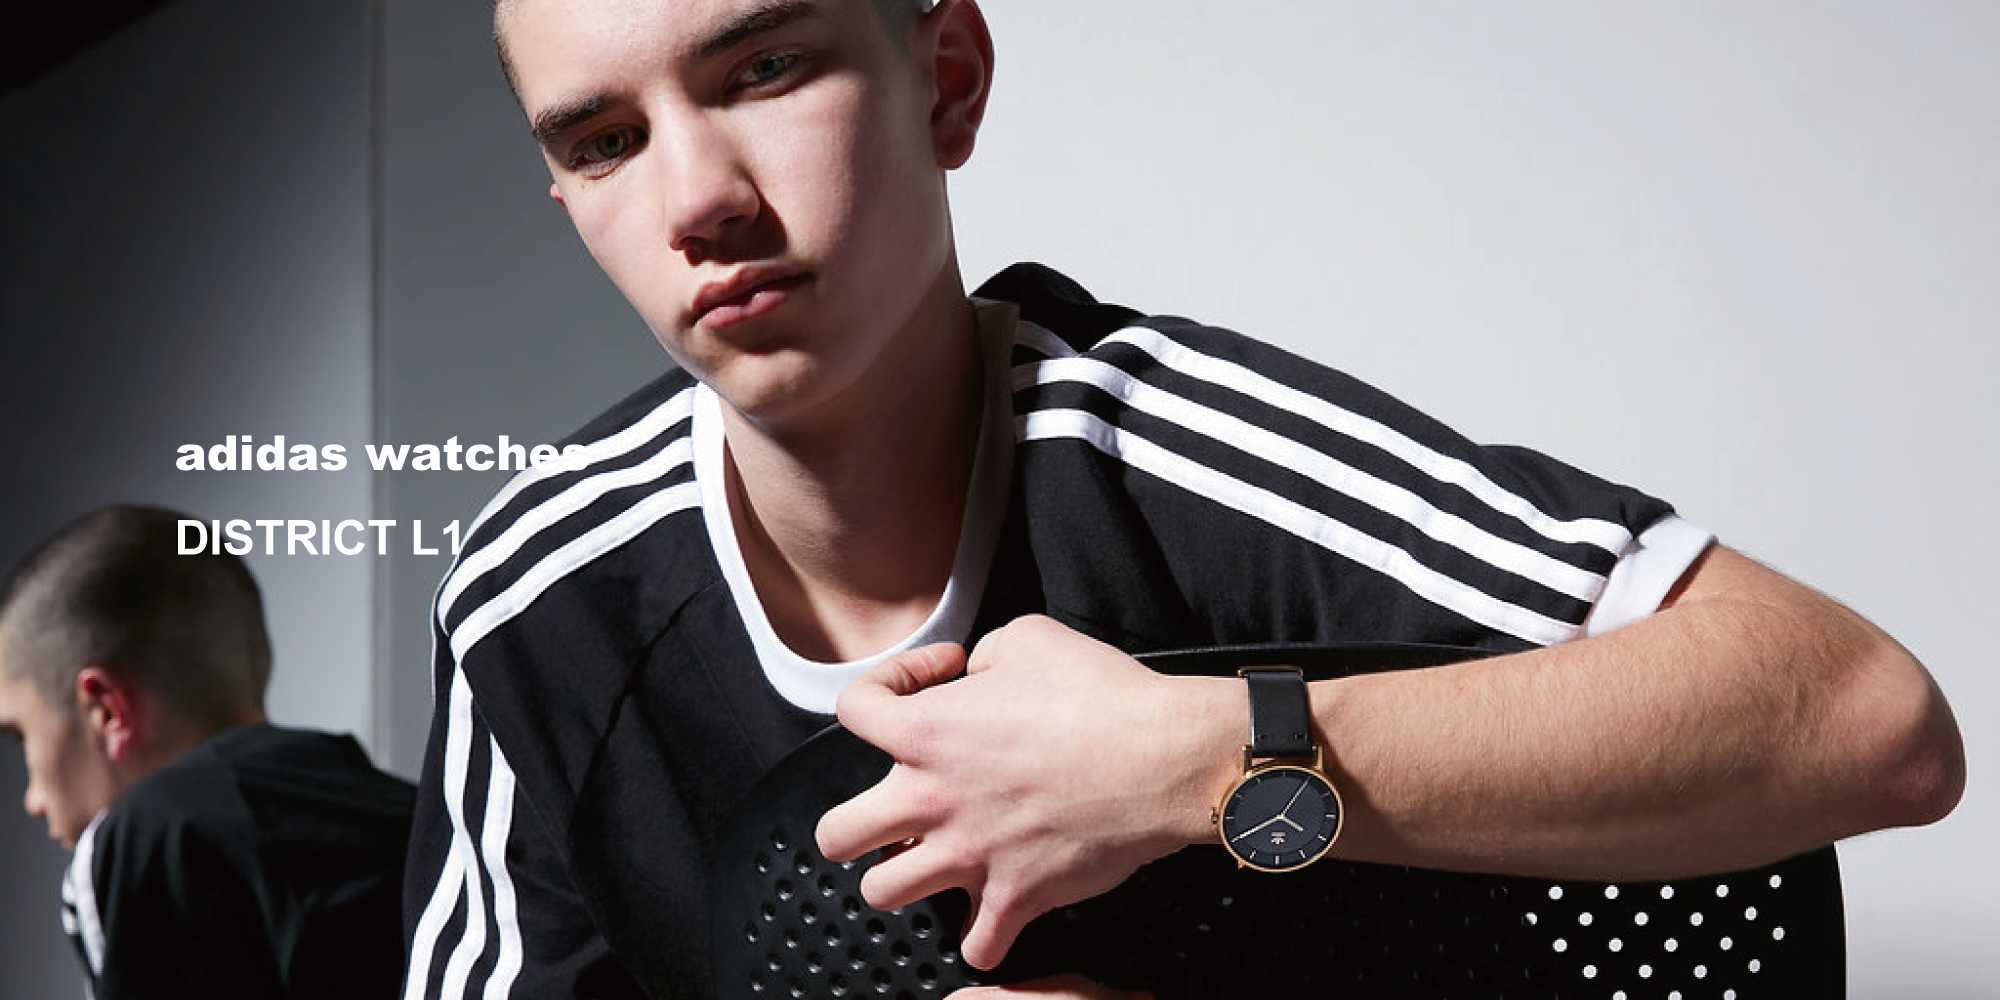 adidas watch district l1